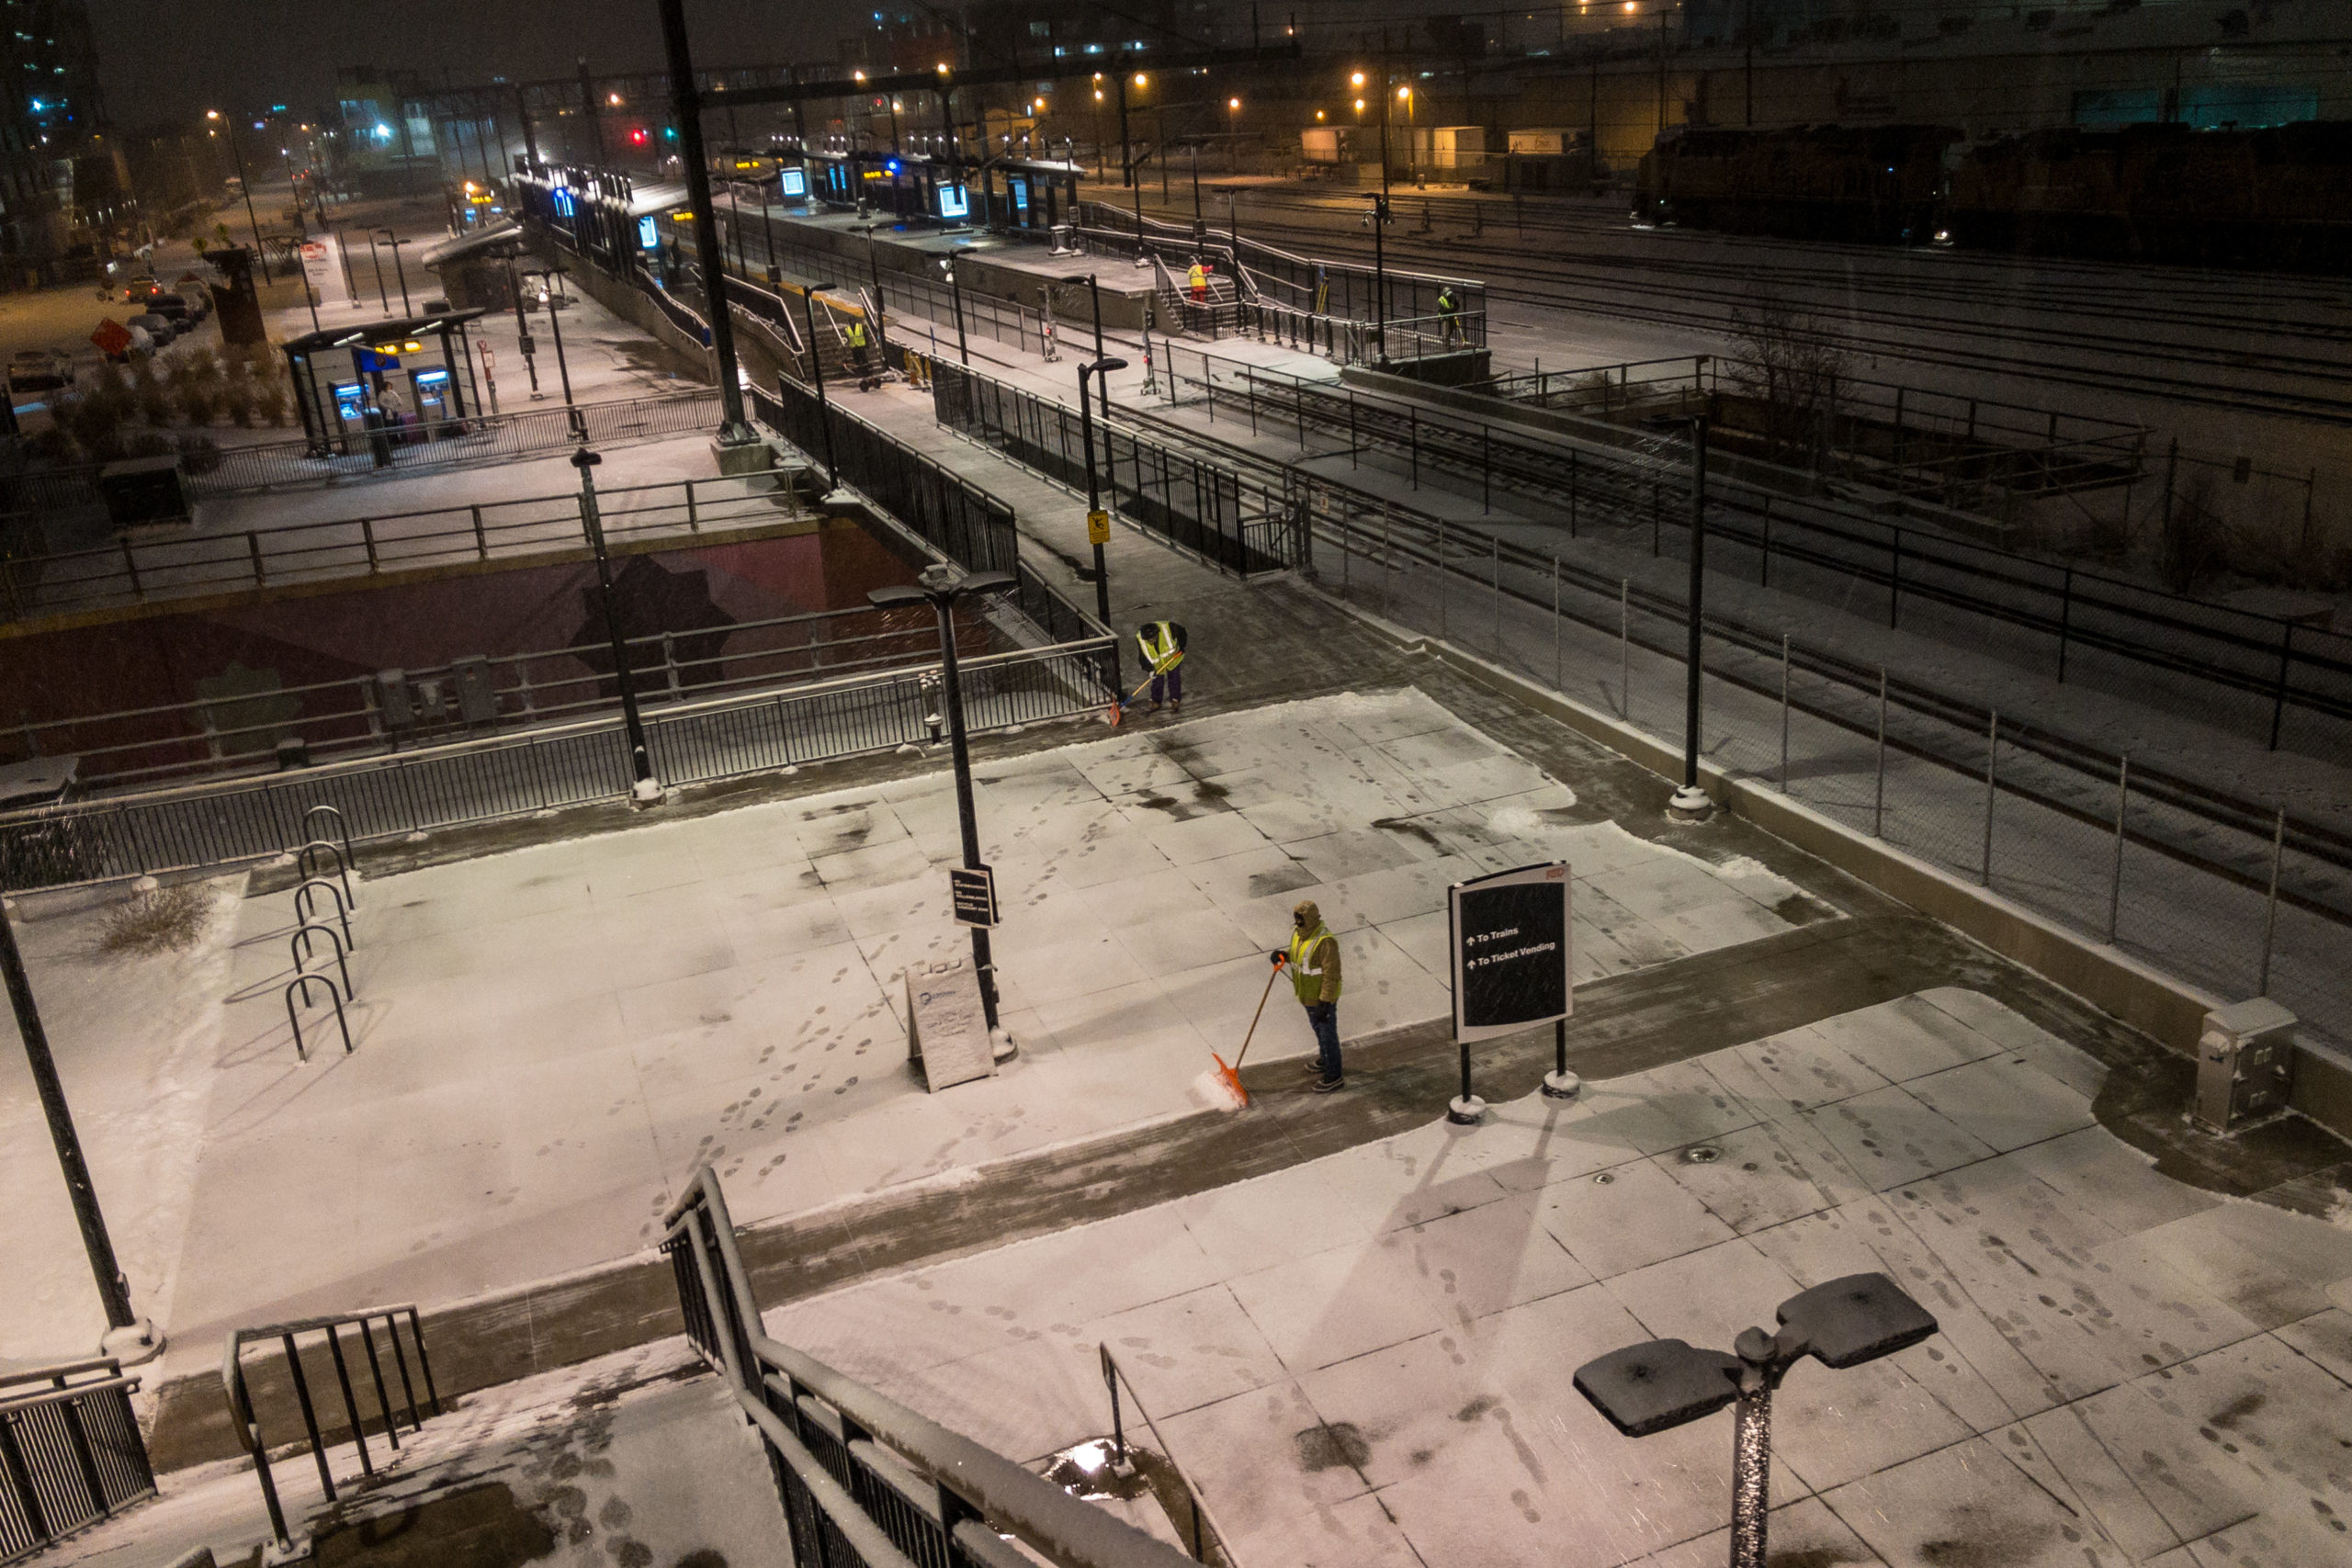 Shovel crews works to clear the snow at the RTD 38th and Blake commuter rail station ahead of rush hour, Feb. 4, 2020.